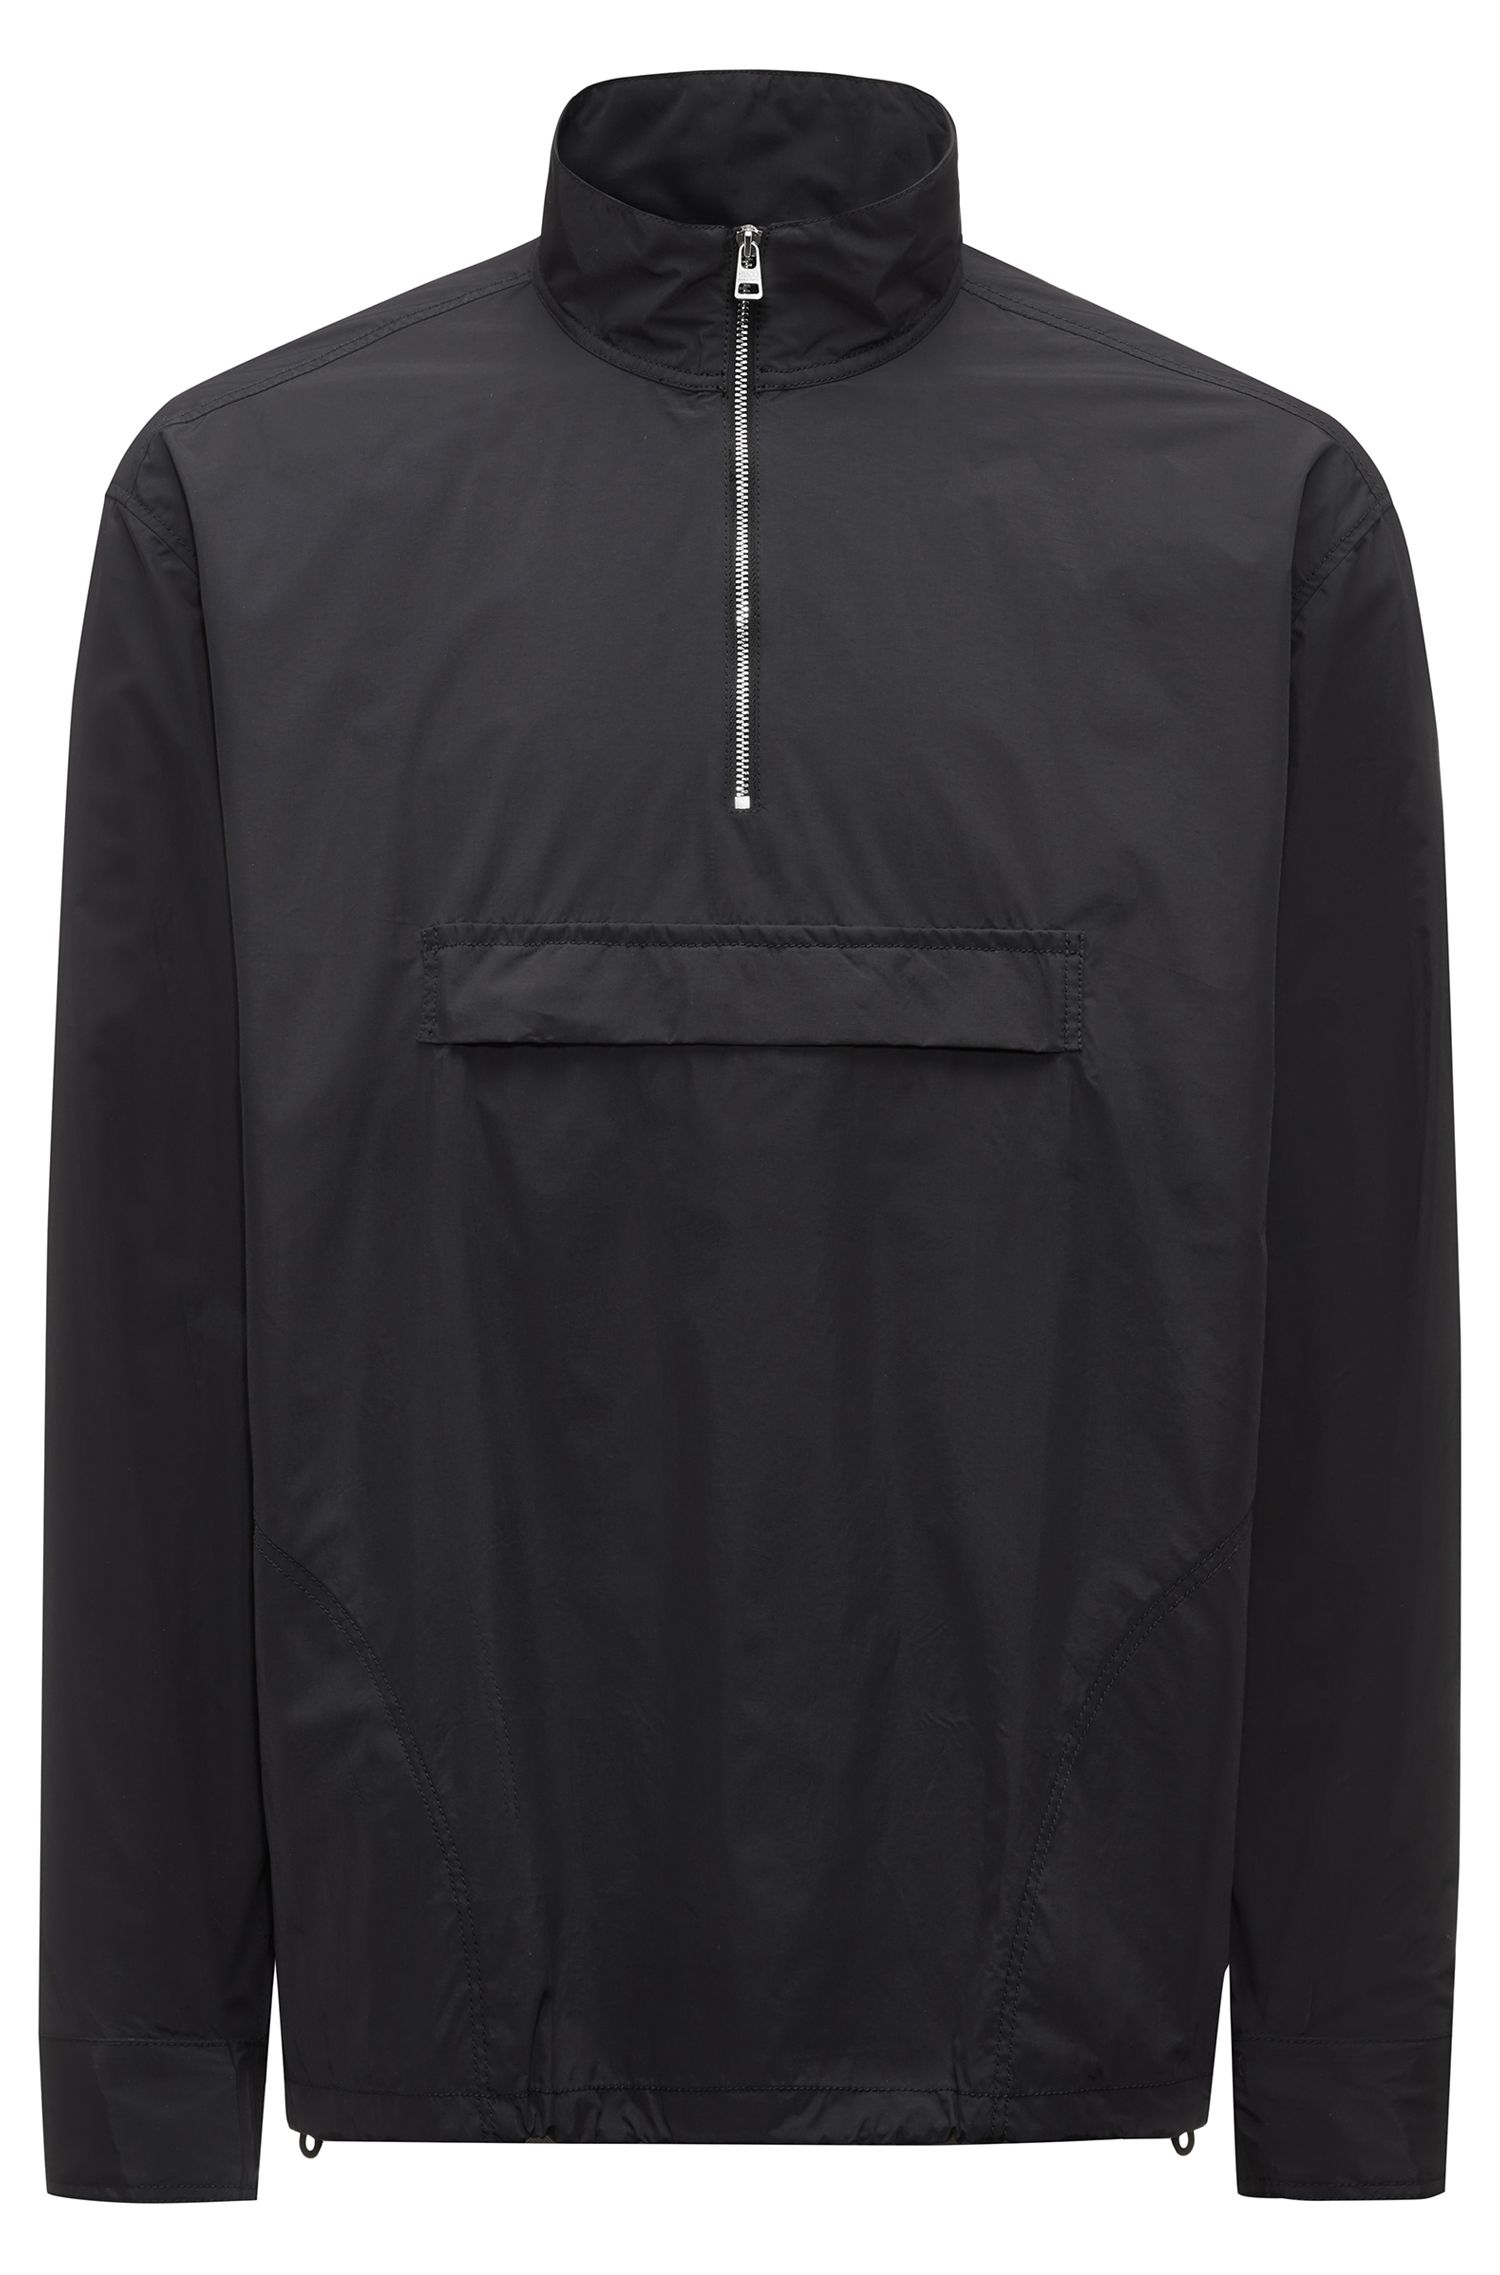 Relaxed-fit zipper-neck shirt jacket in technical fabric